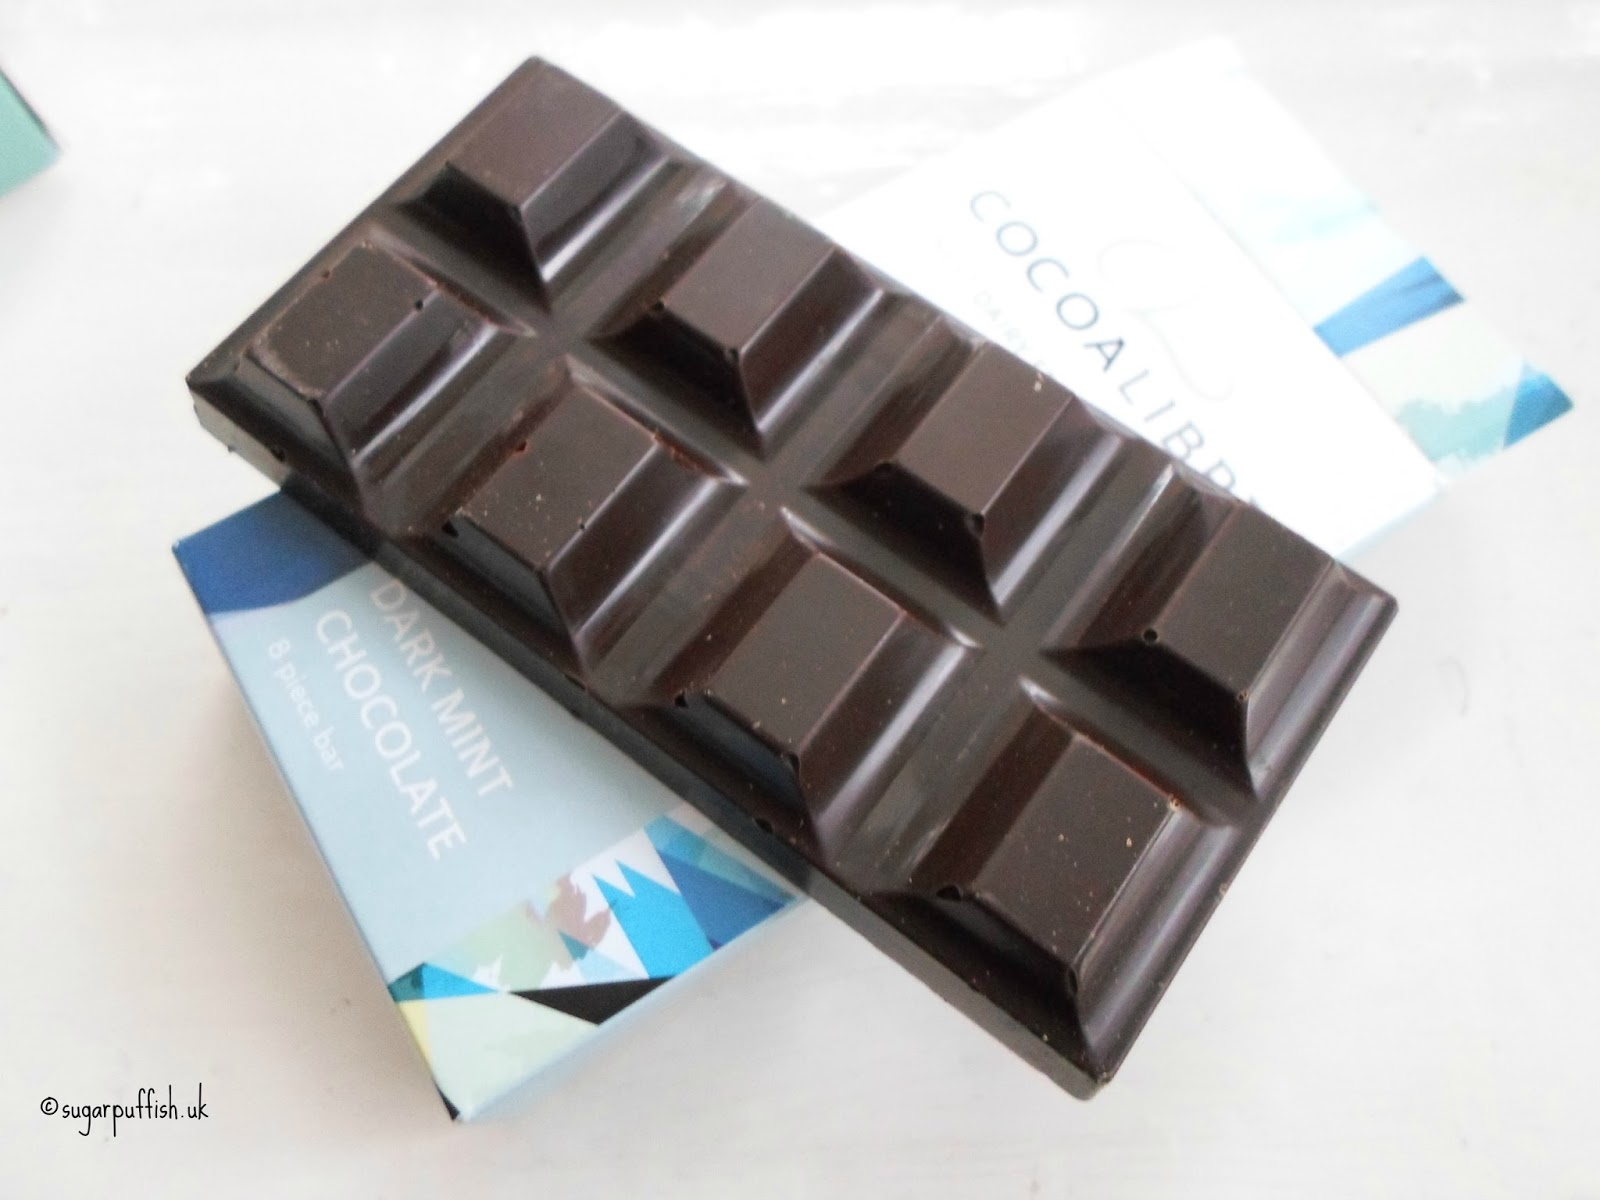 cocoa libre dark mint bar dairy free